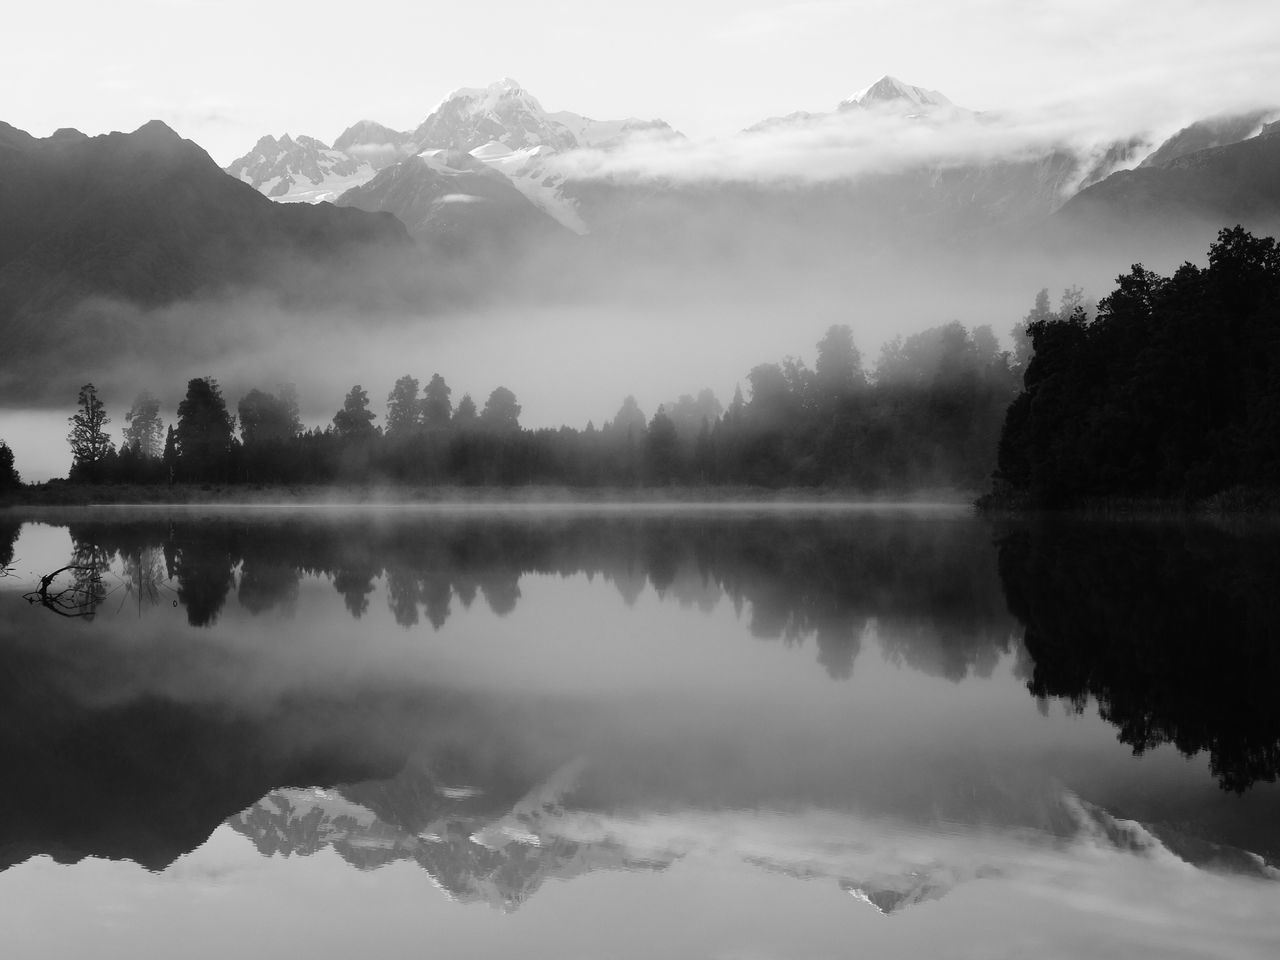 Reflection Water Lake Nature Tranquility Mountain Scenics Tree Beauty In Nature Tranquil Scene No People Sky Fog Outdoors Day Calm Water Reflections Mirror Lake New Zealand Lake Matheson Foggy Morning Light Symmetry Silence Blackandwhite